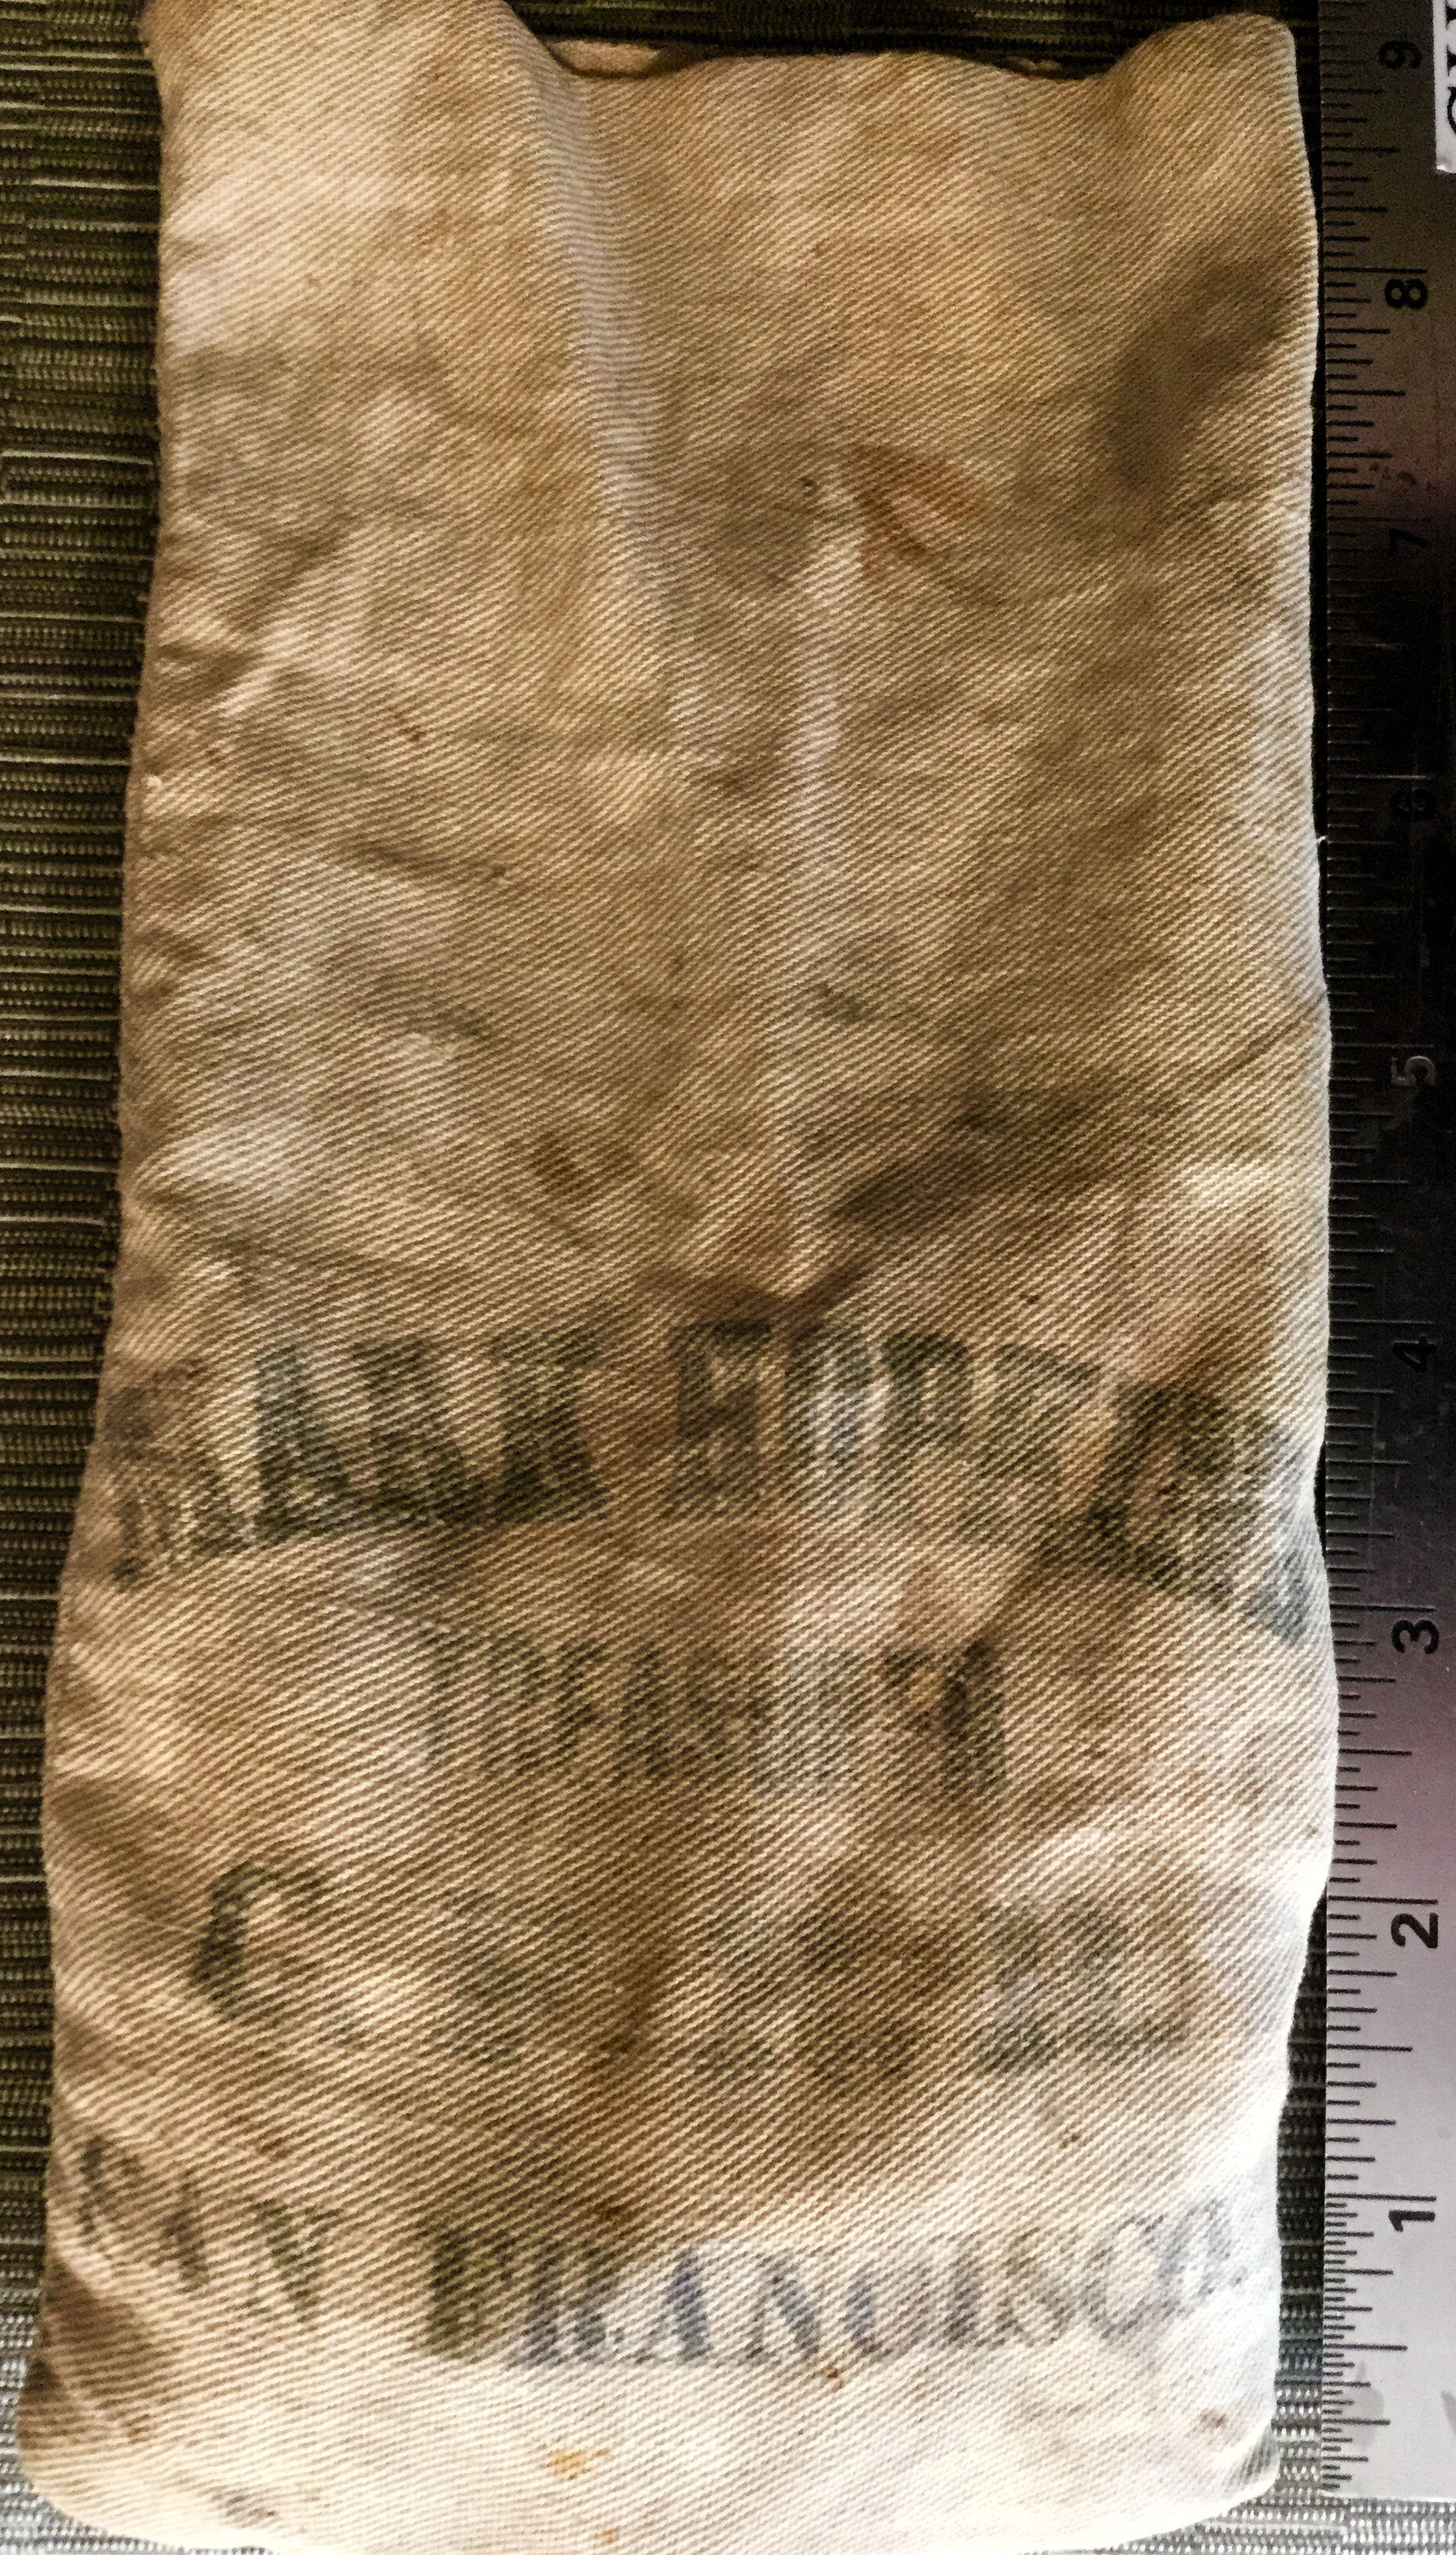 cloth money bag - Old linen bag from C.P.R.R. - 'Mark Hopkins, Treasurer, C.P.R.R., San Francisco.'